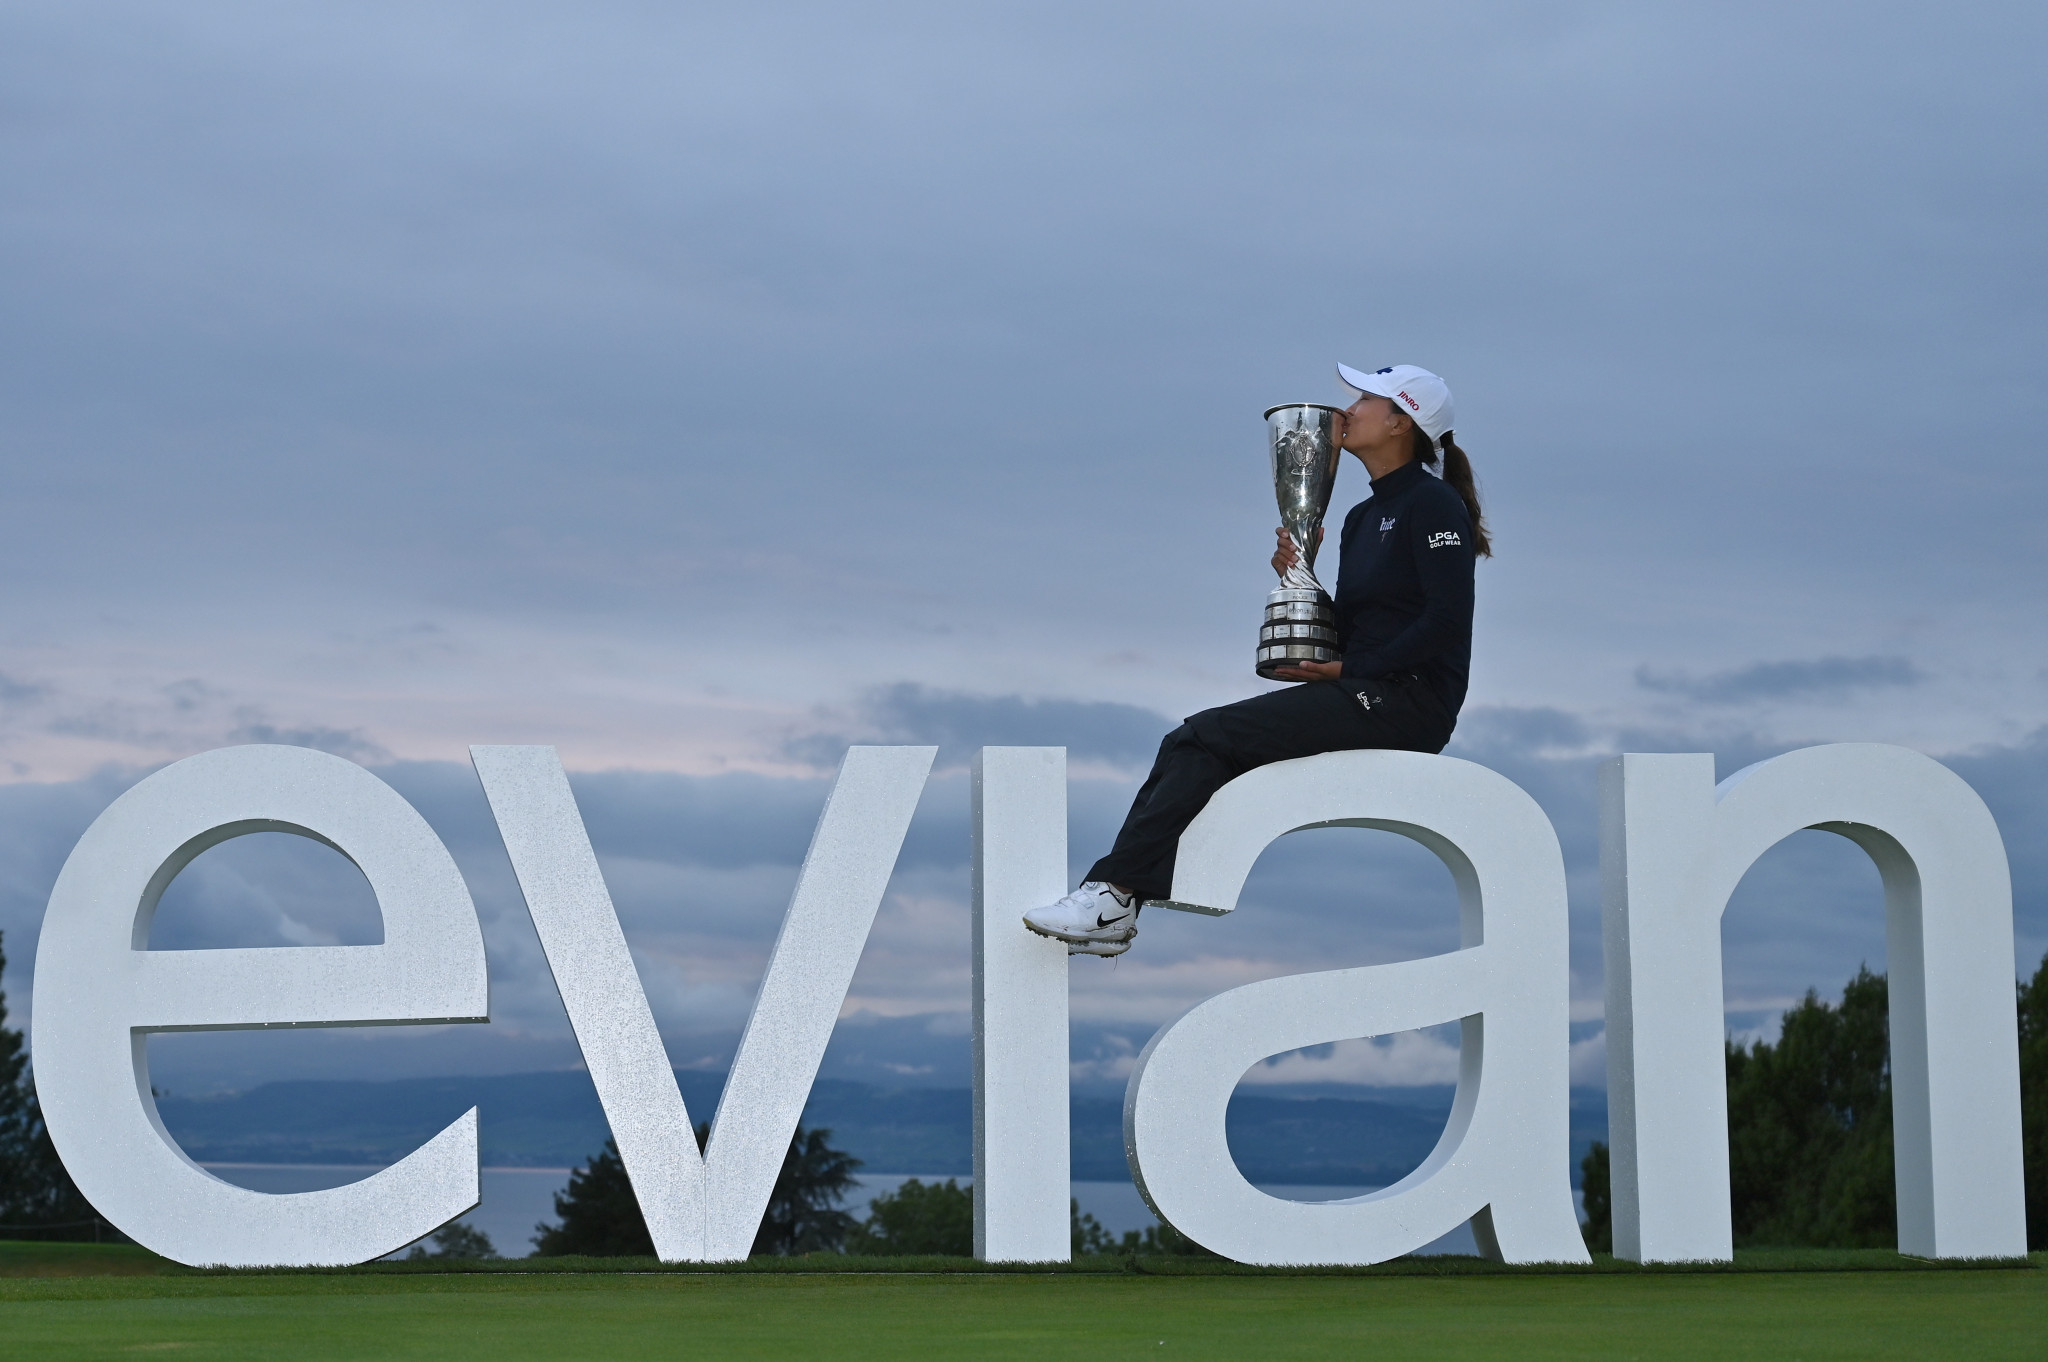 Ko rises to final challenge to win second major at Evian Championship